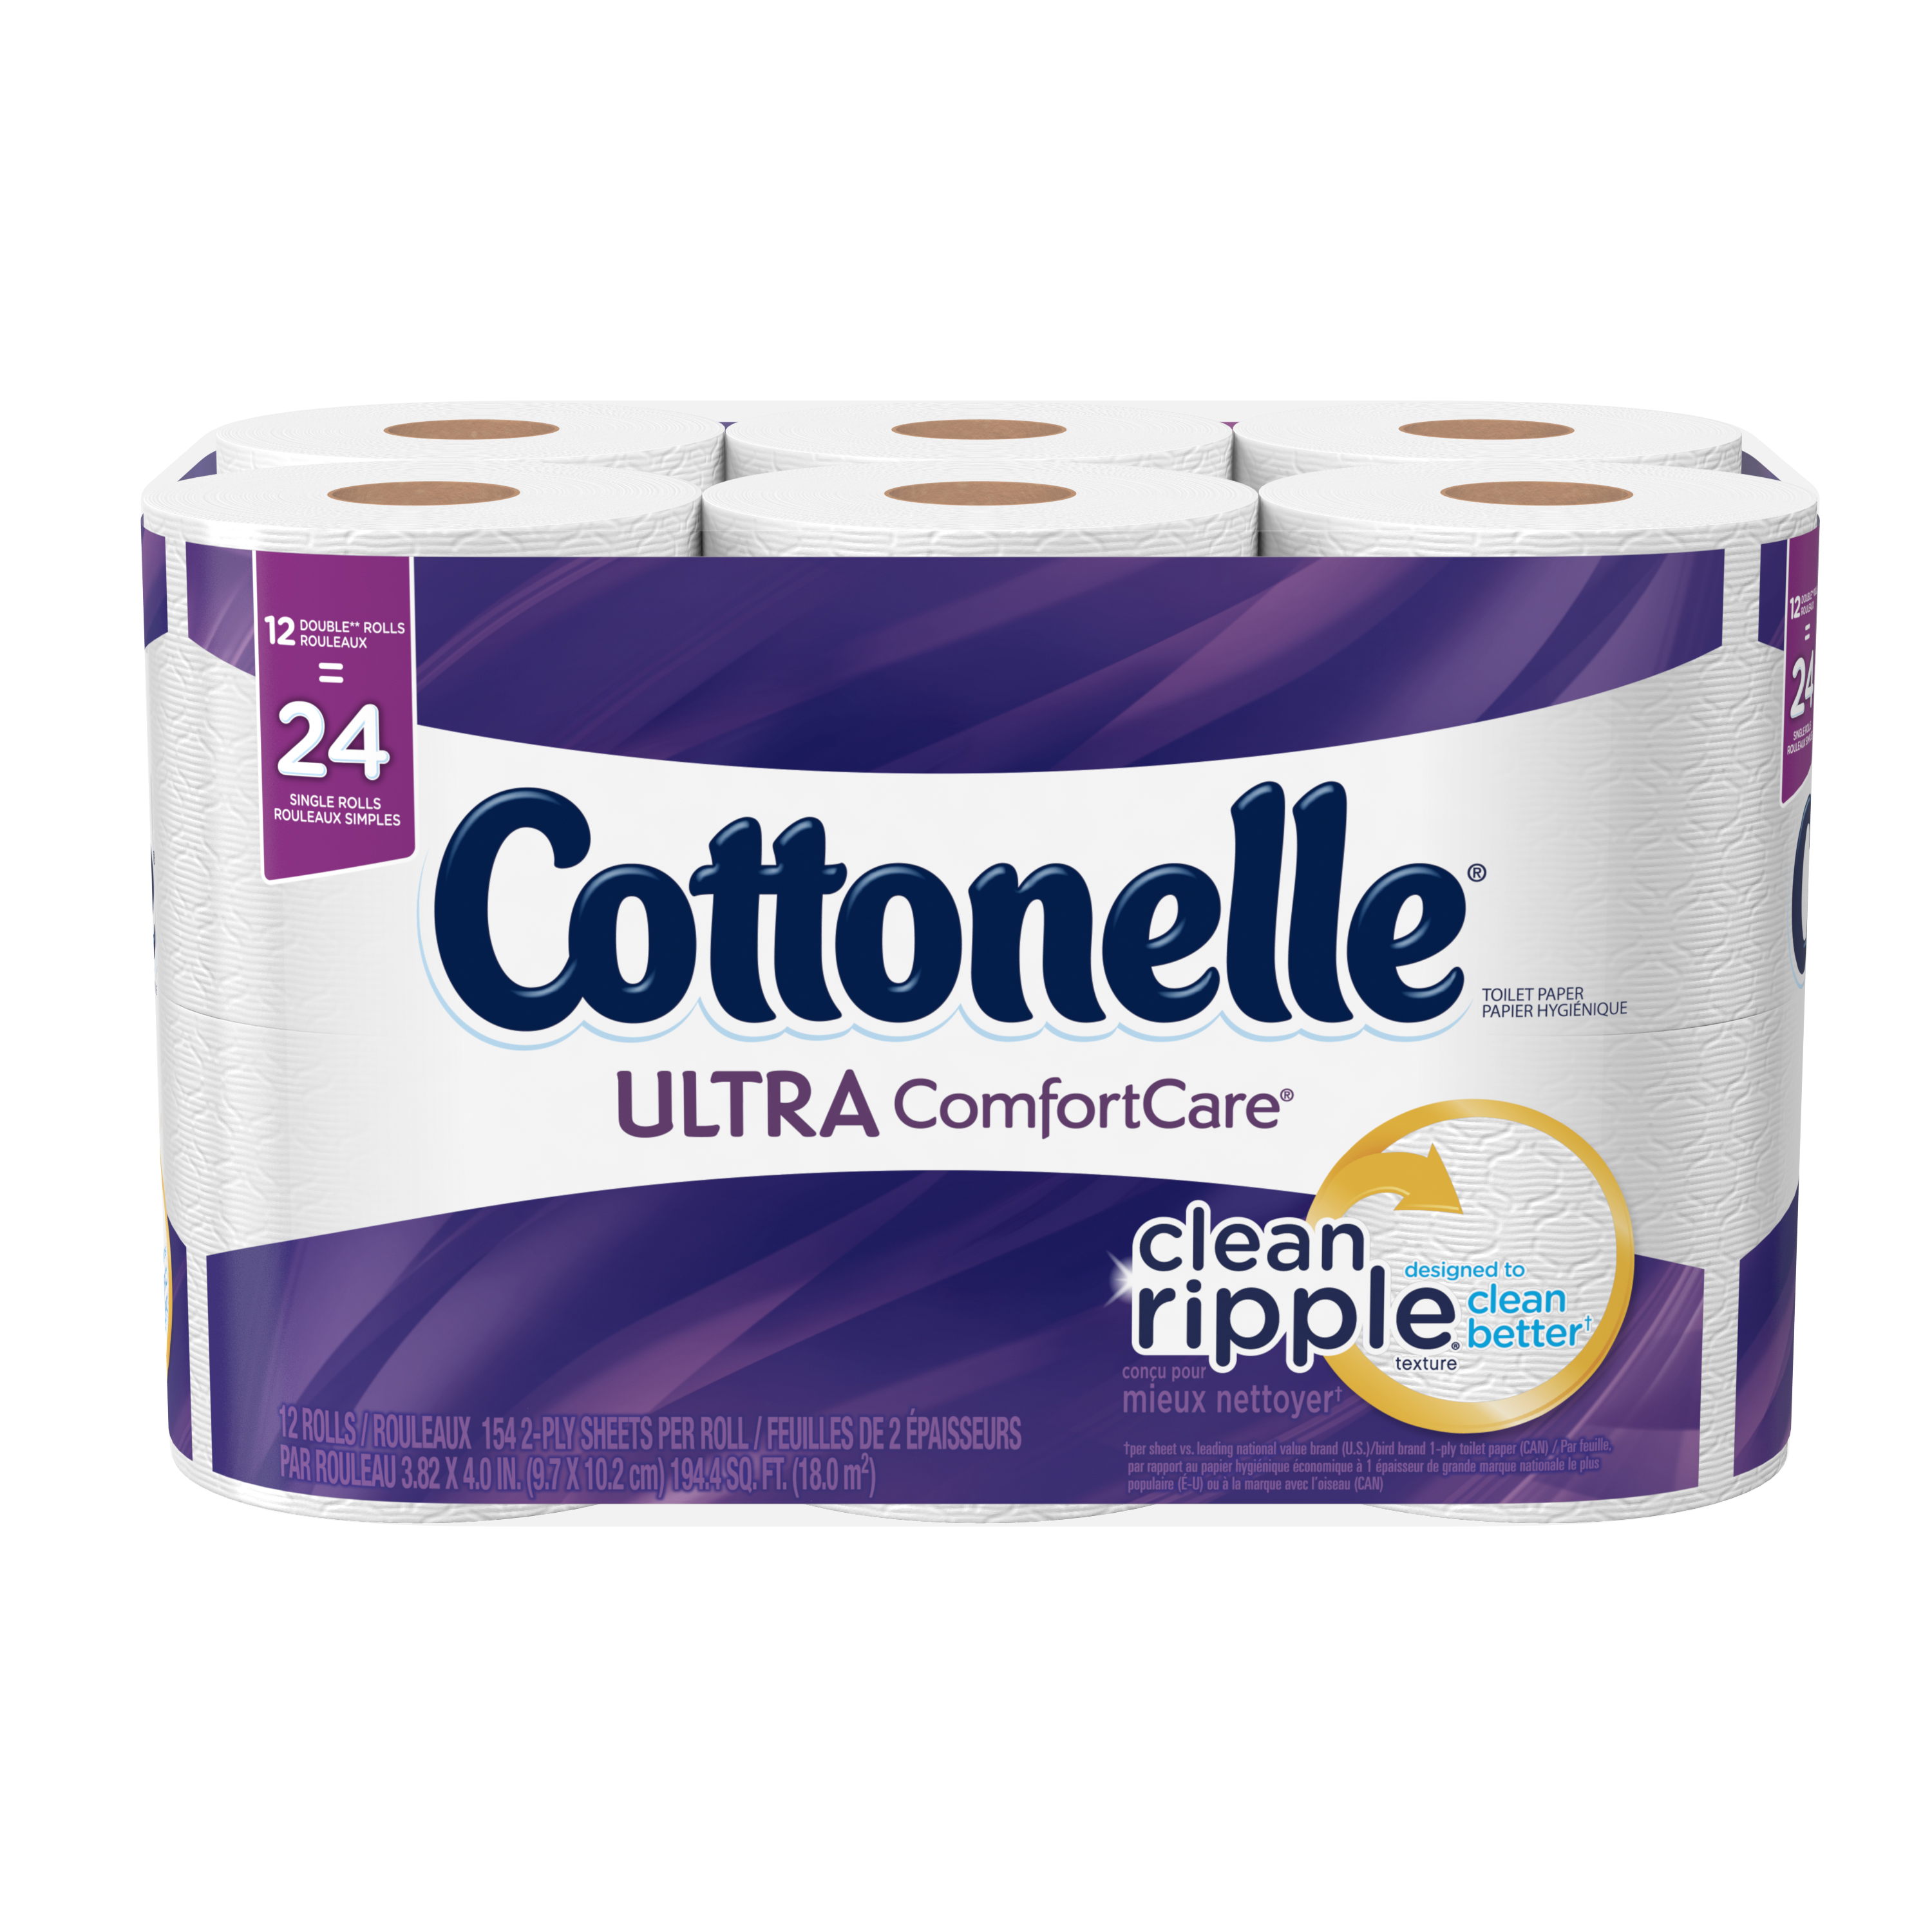 Cottonelle Ultra Comfort Care Double Roll Toilet Paper, 154 sheets, 12 rolls